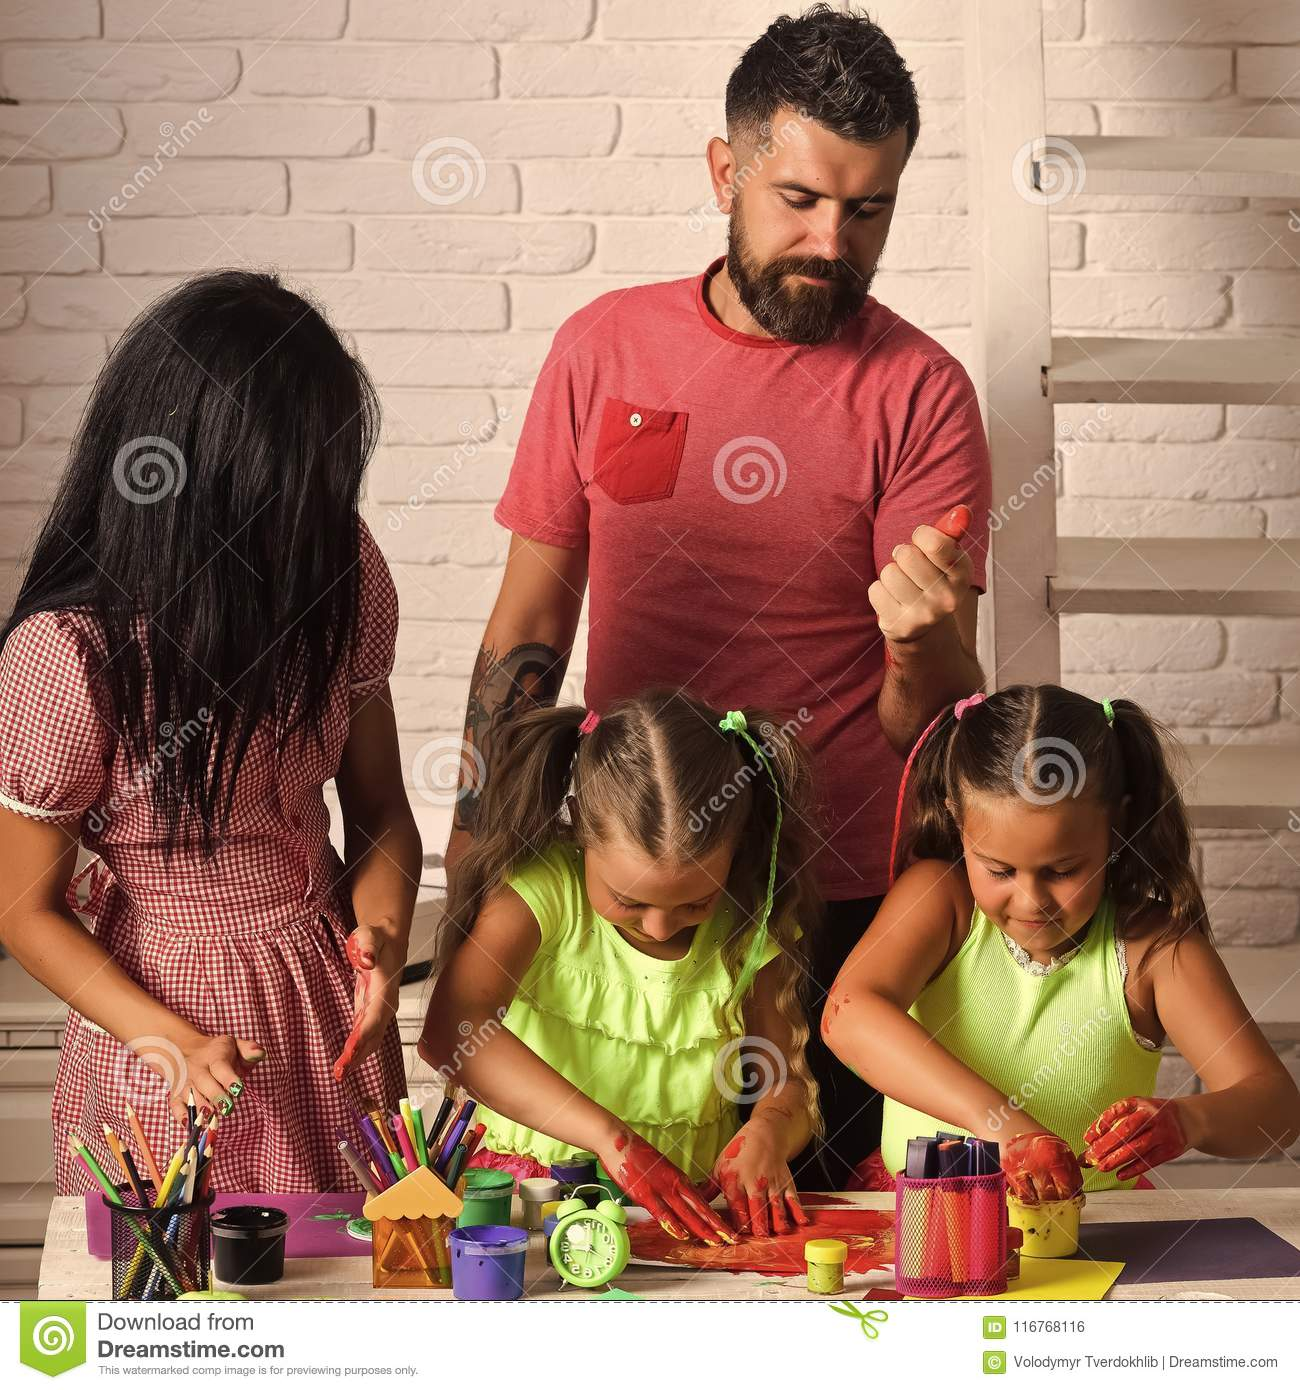 Girls Drawing With Mother And Father Happy Childhood And Parenting Imagination Creativity Concept Finger Painting And Arts